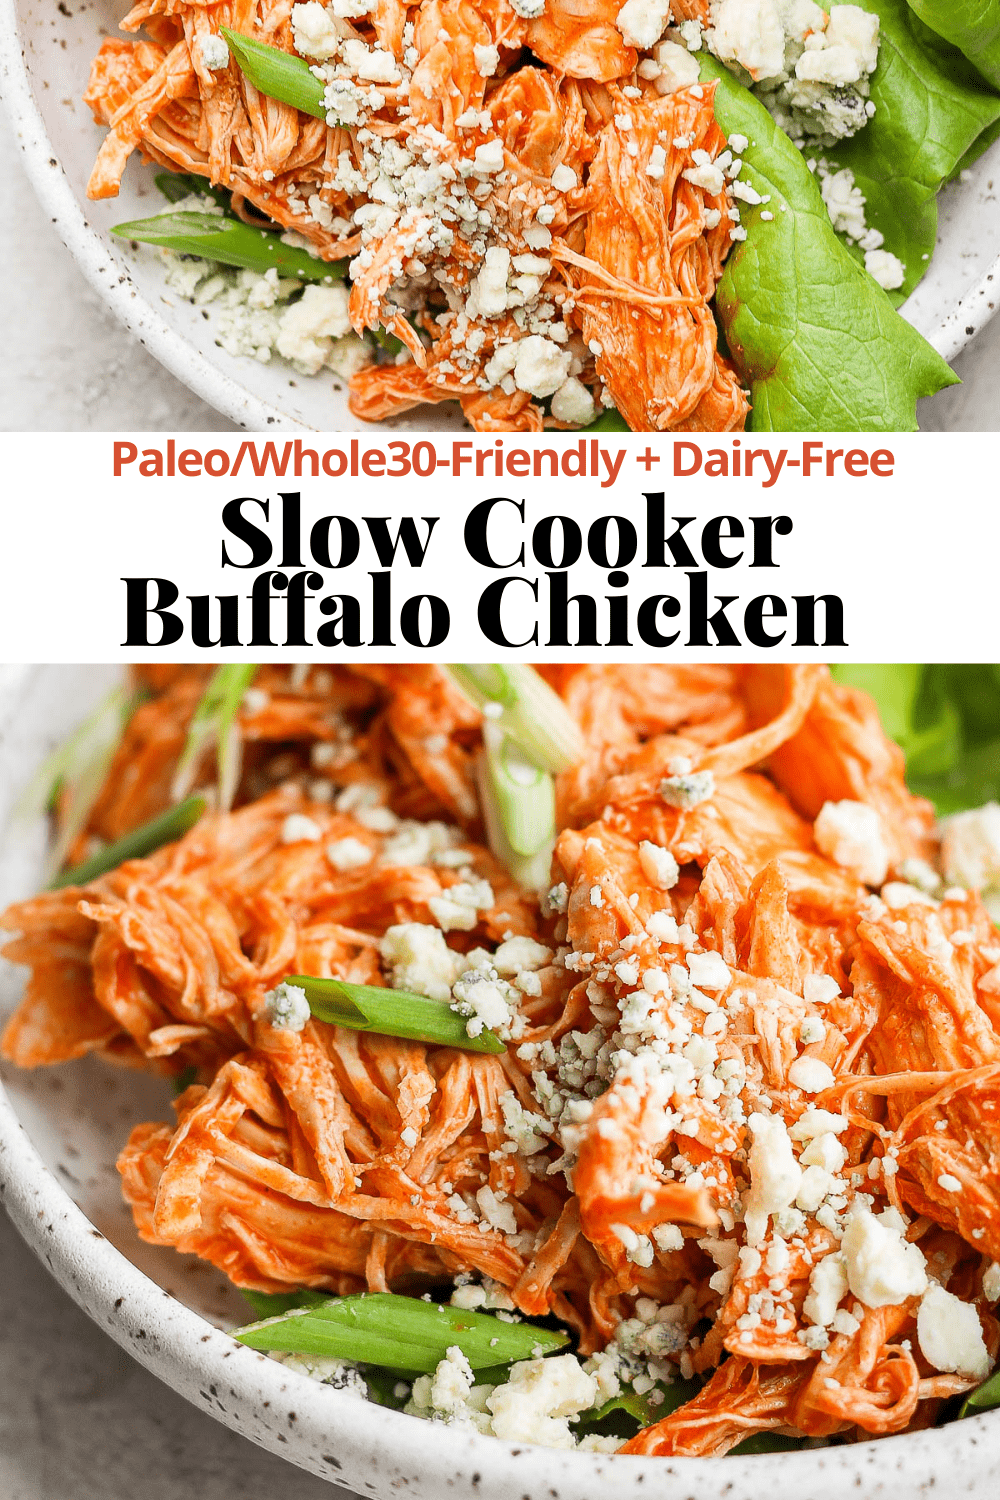 Pinterest image for slow cooker buffalo chicken.